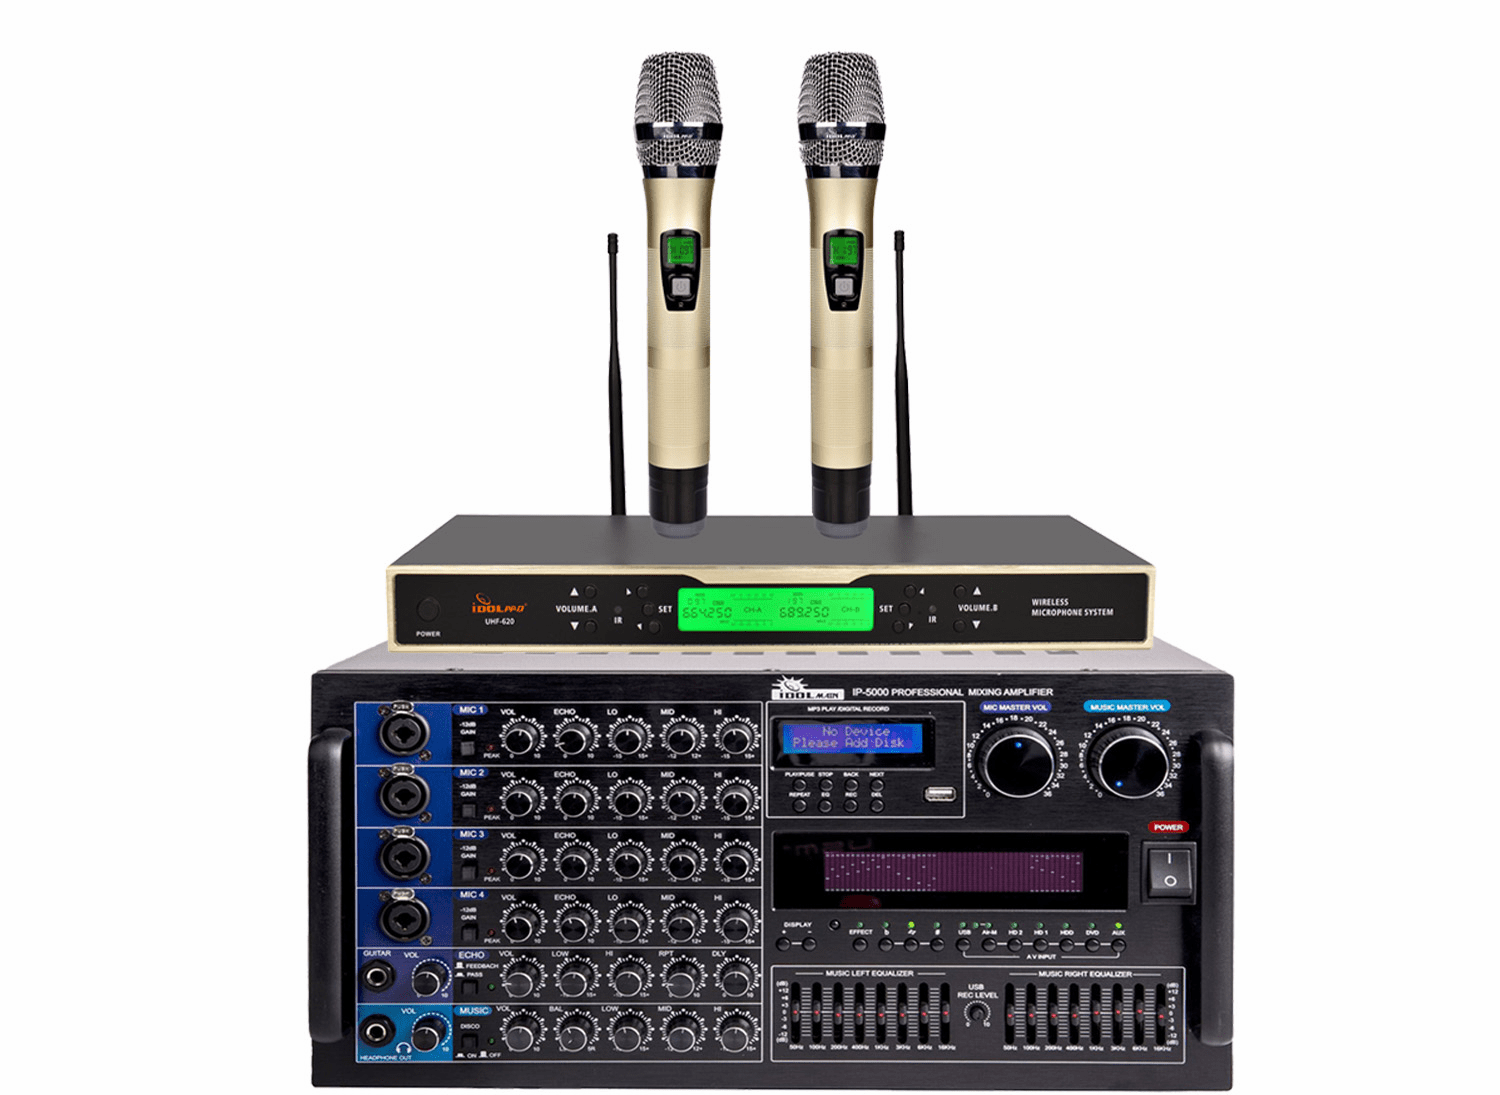 "<font color="" blue""> PACKAGE 7</font> --IP-5000 Mixing Amplifier & UHF-620 Wireless Microphone"